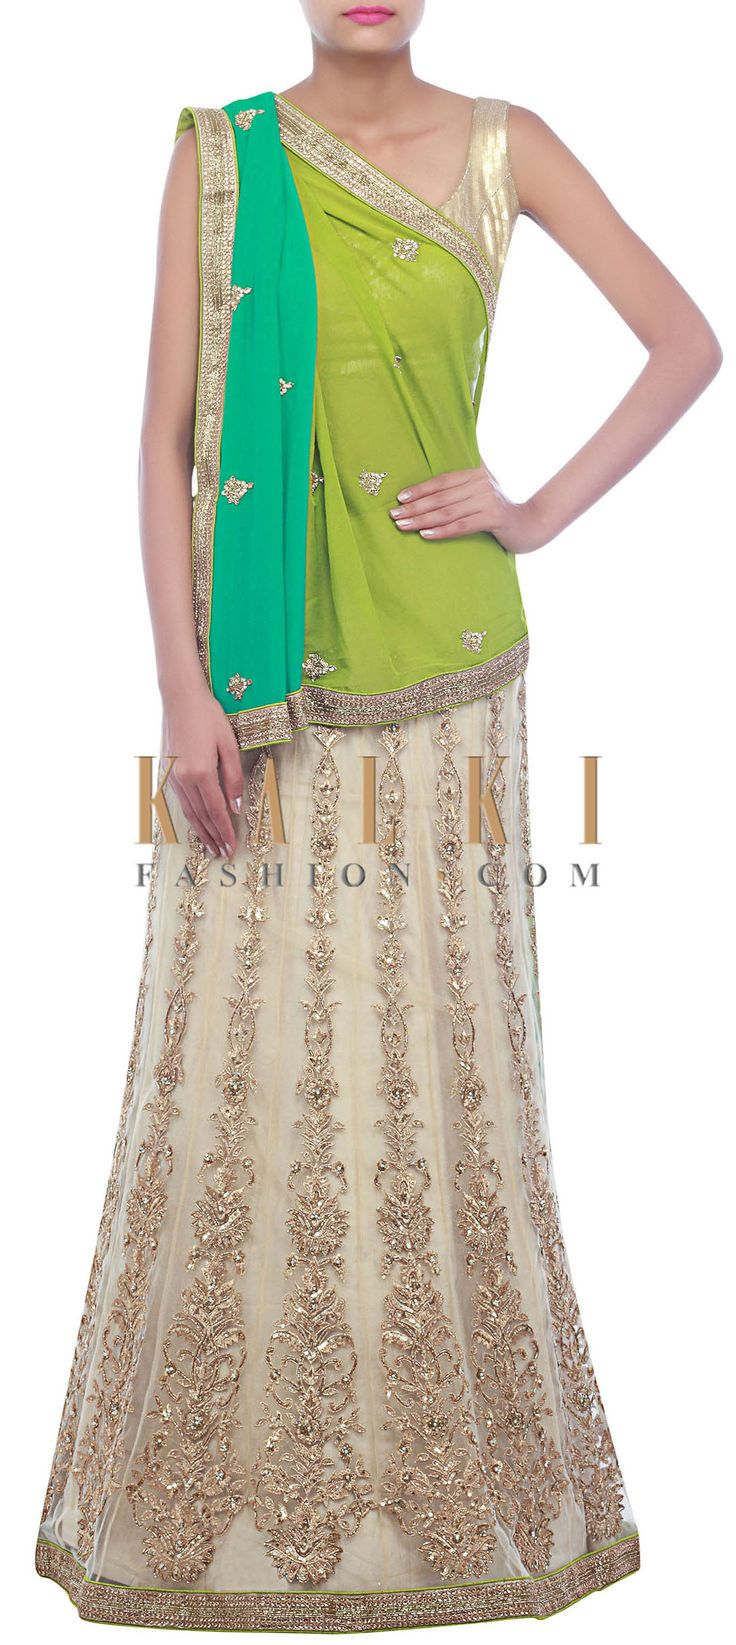 Buy Online from the link below. We ship worldwide (Free Shipping over US$100) http://www.kalkifashion.com/beige-and-green-lehenga-saree-embellished-in-zari-embroidery-only-on-kalki.html